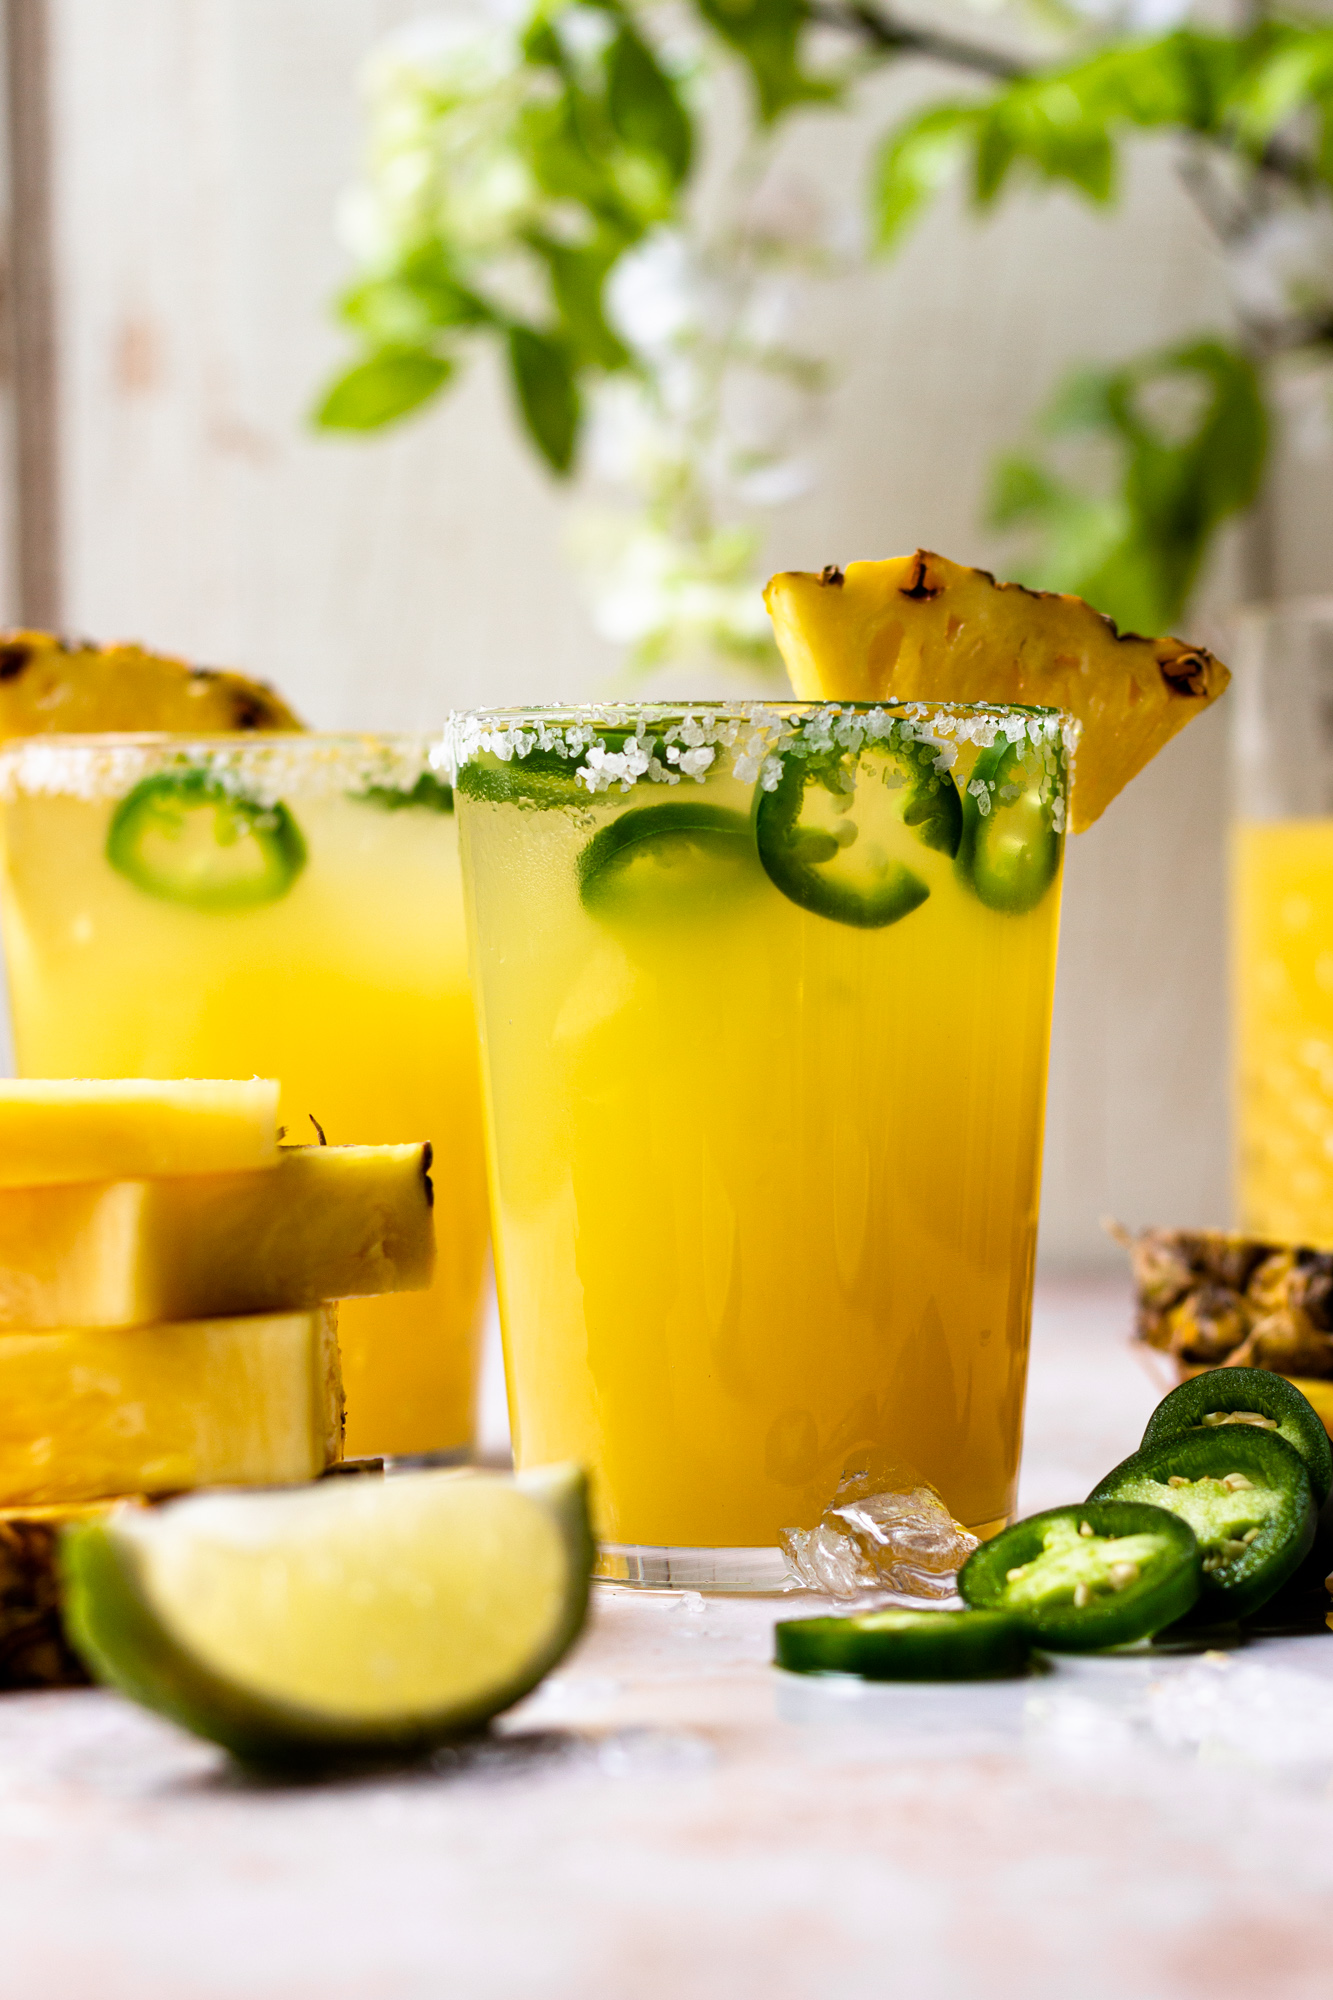 Refreshing and delicious pineapple margarita with a little kick of heat! This fun cocktail is perfect for sipping on a warm, sunny day, and is only lightly sweetened with pineapple juice. Add your desired level of spice by adding more or less jalapeño slices, or omit them if spicy isn't your thing. The cocktail will still taste great!